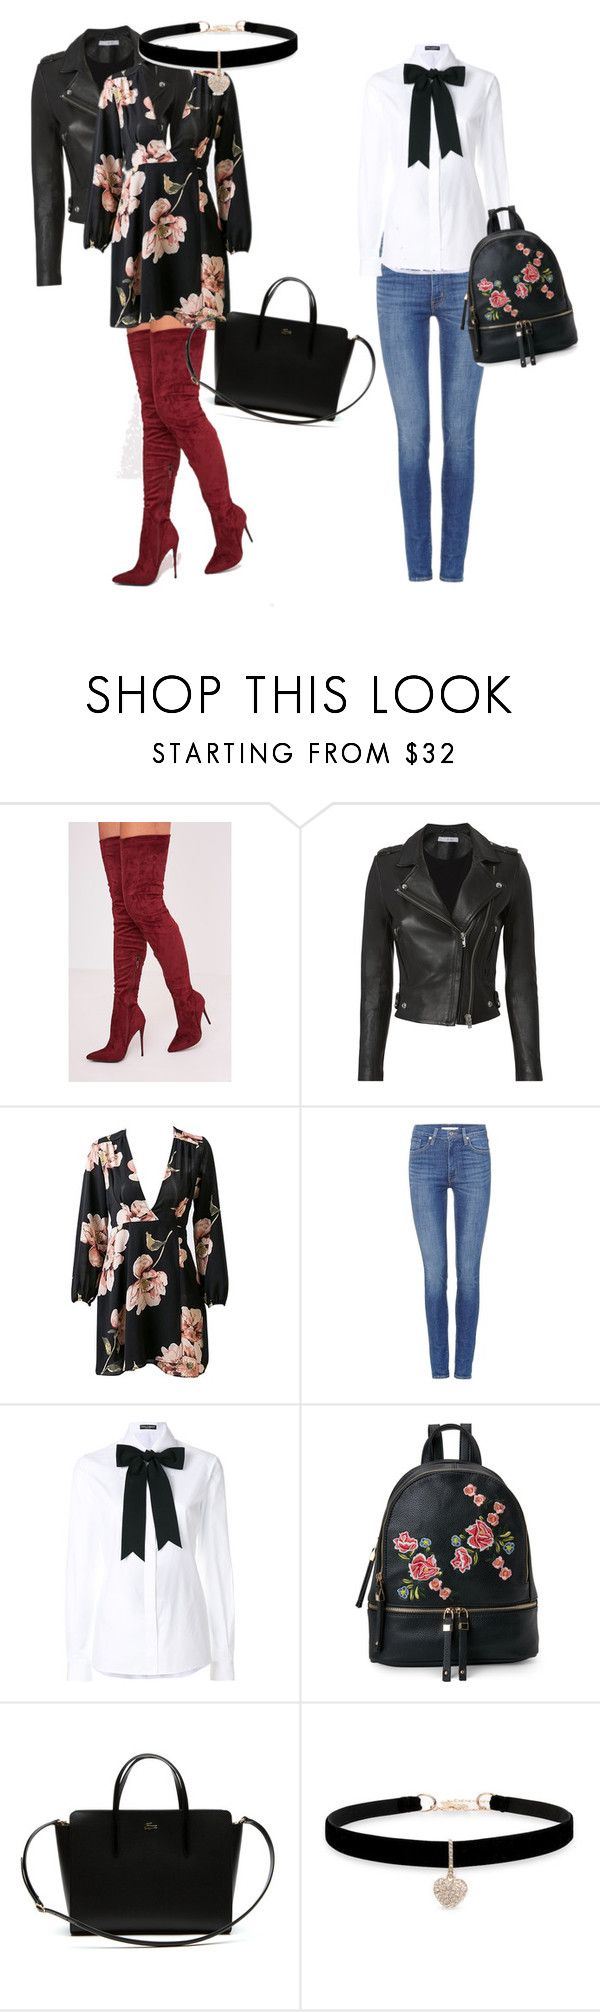 """Botas xl Rojas"" by zoilashopper on Polyvore featuring IRO, Levi's, Dolce&Gabbana, Urban Expressions, Lacoste and Betsey Johnson"